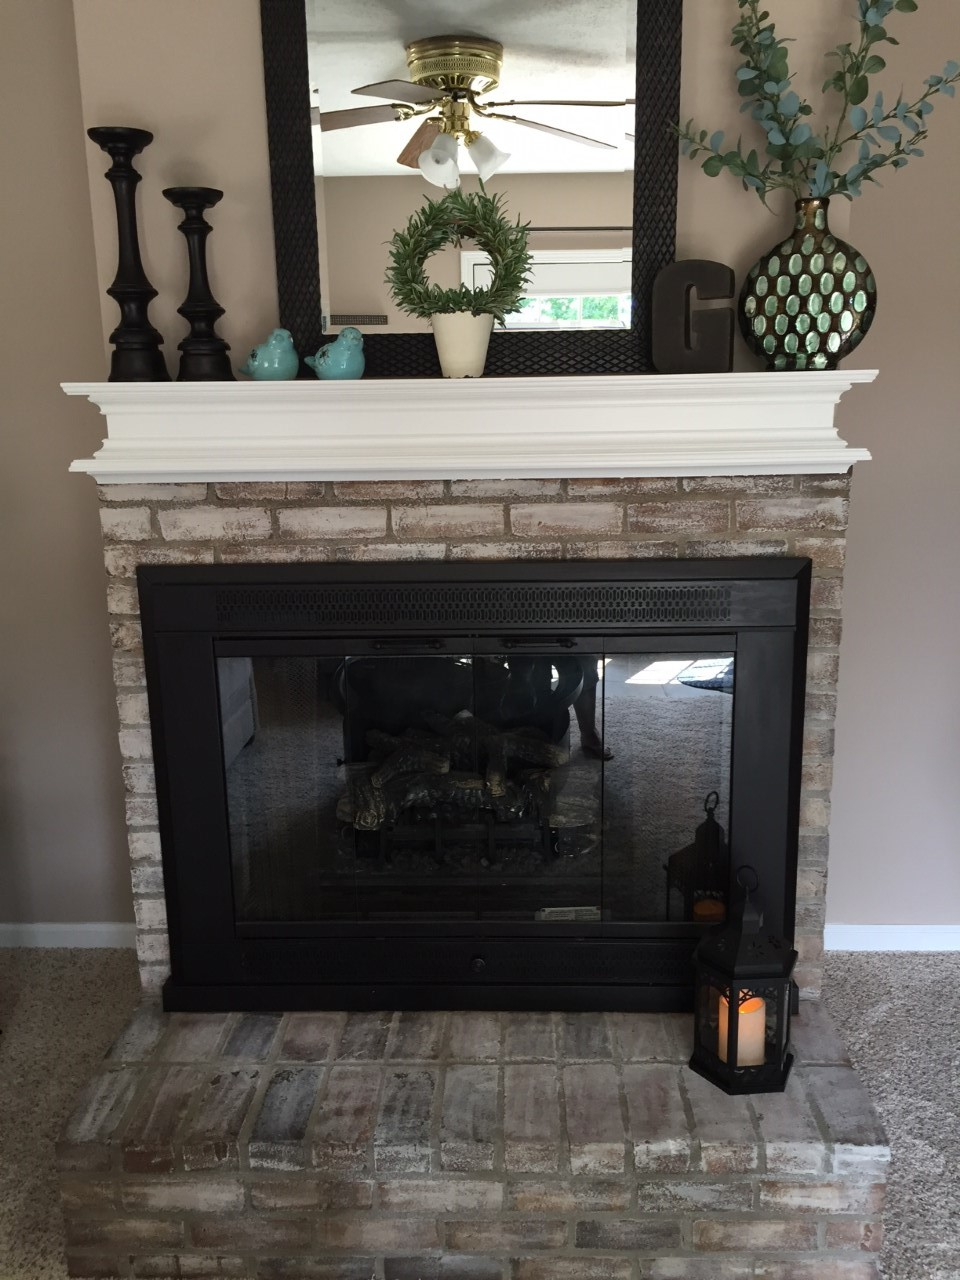 Heat Resistant Paint Fireplace How To Whitewash Brick And Paint Your Brassy Fireplace Re Fabbed